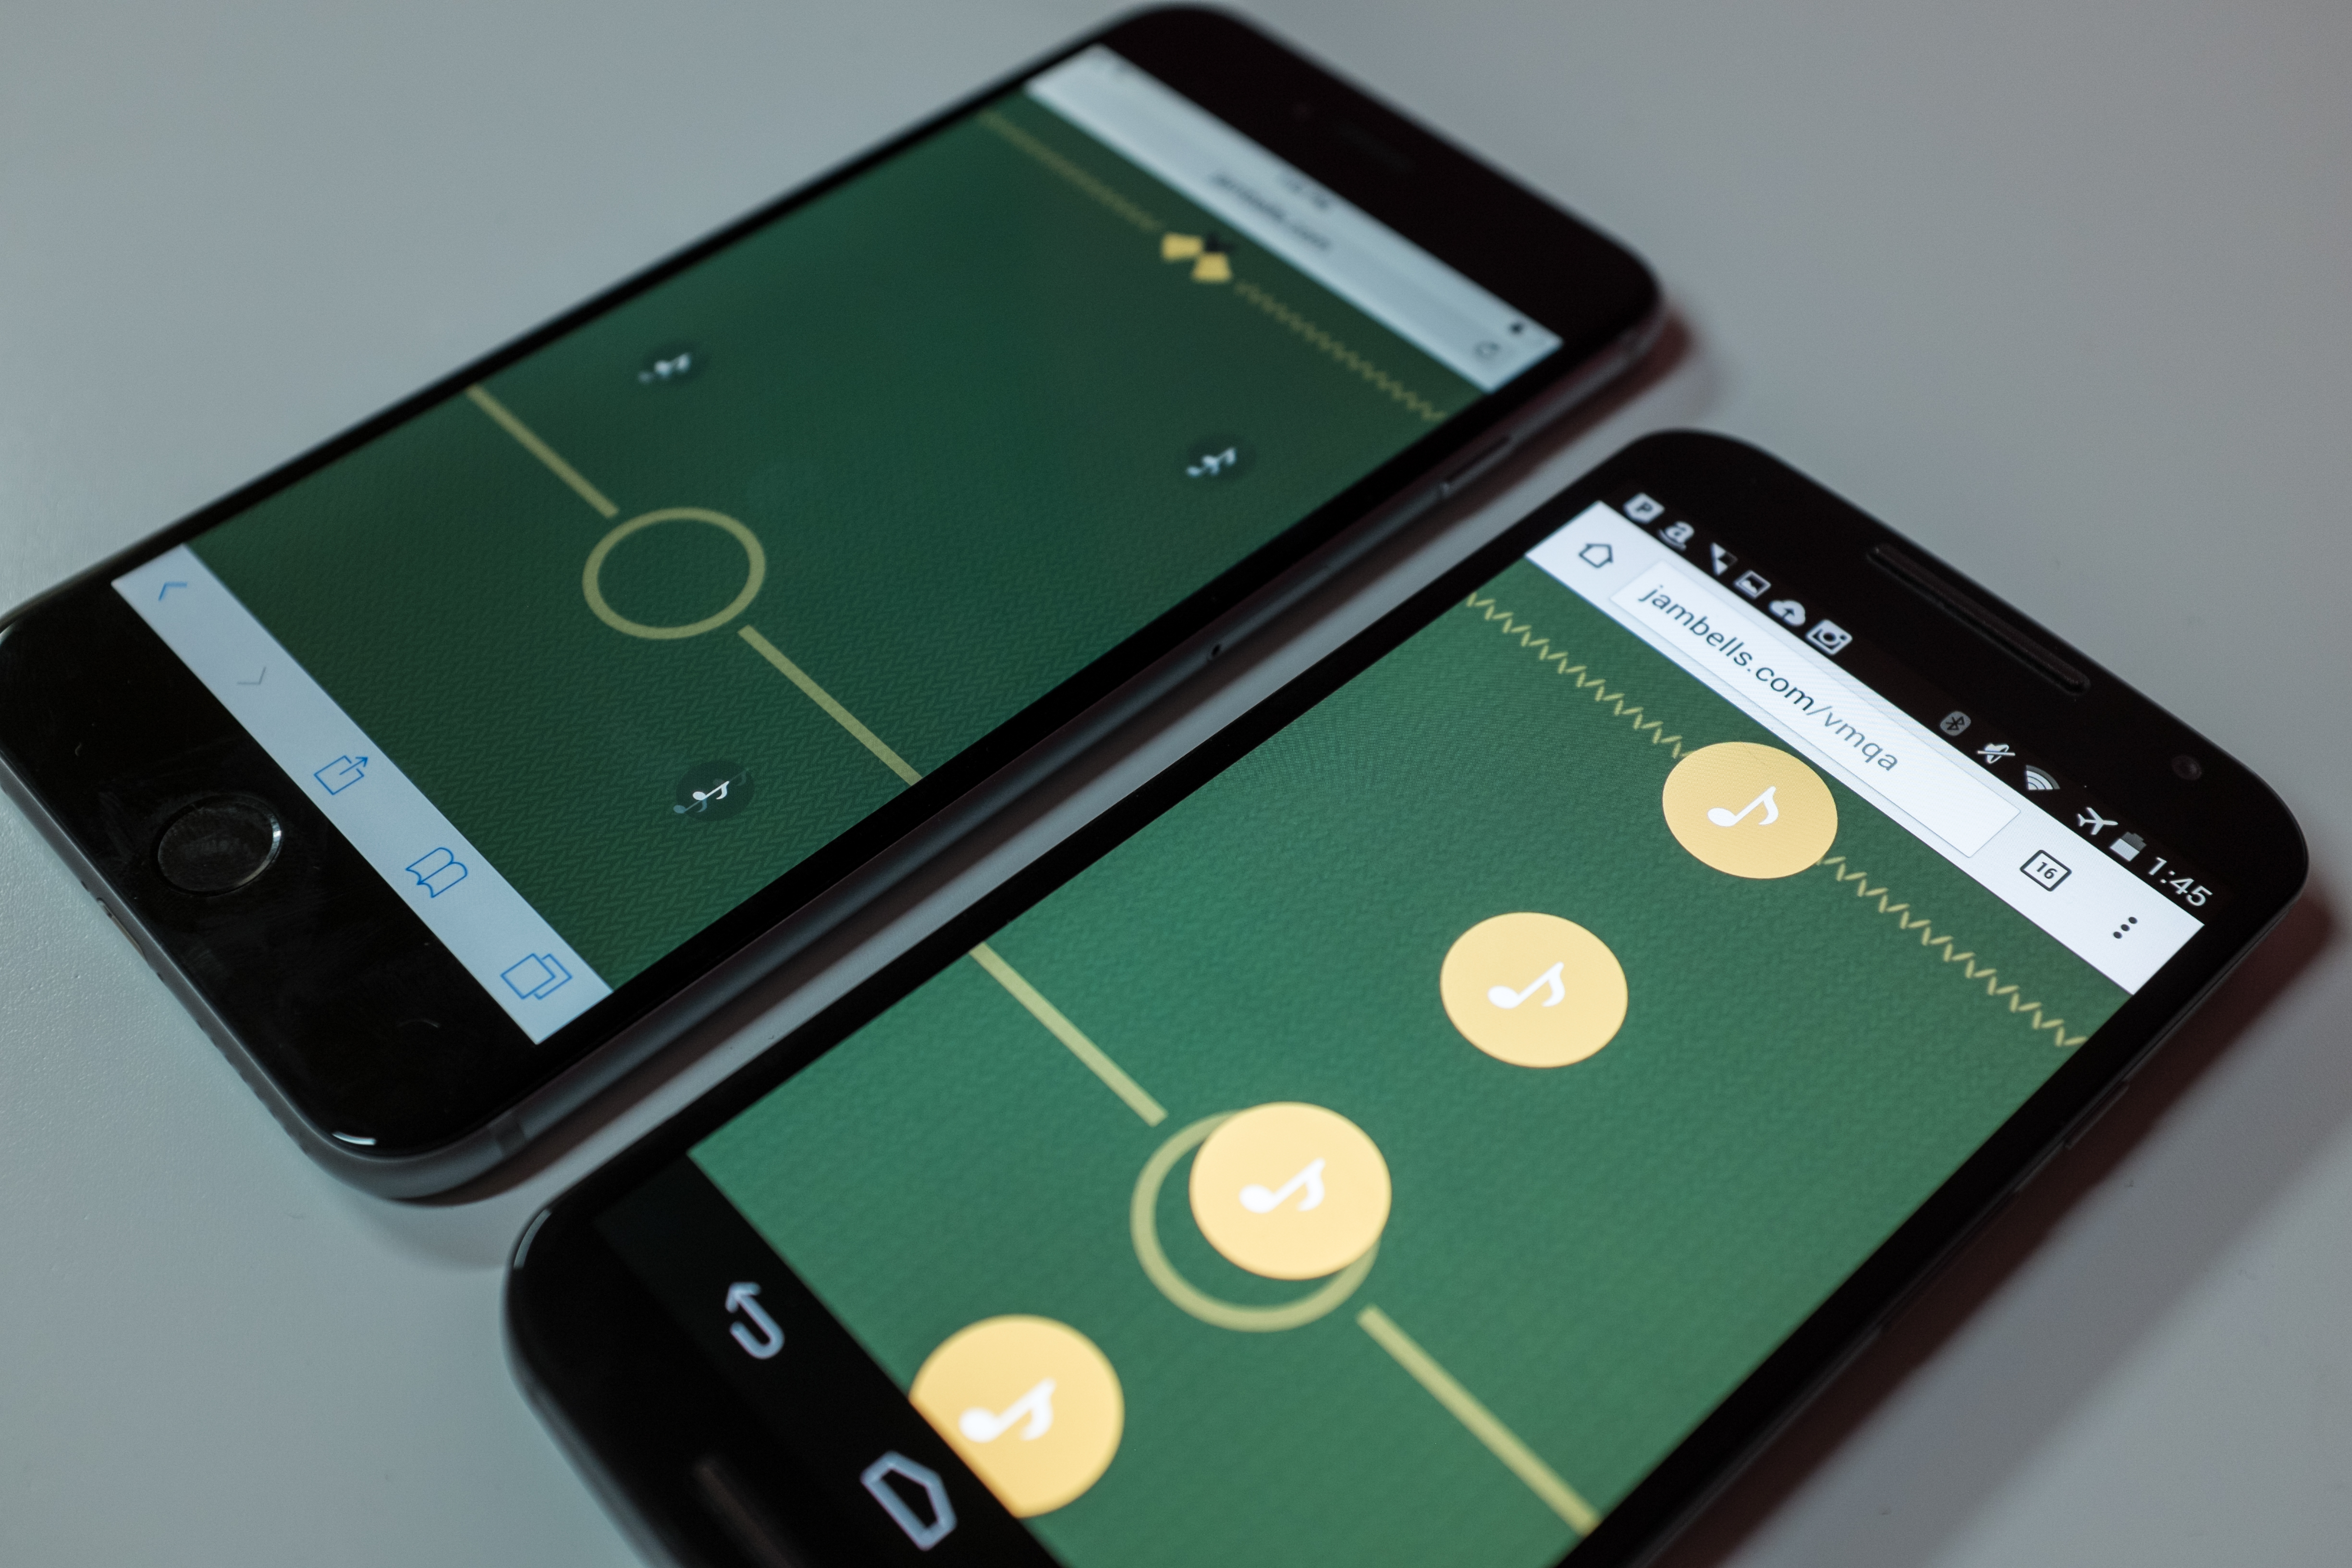 jambells-on-android-iphone.jpg